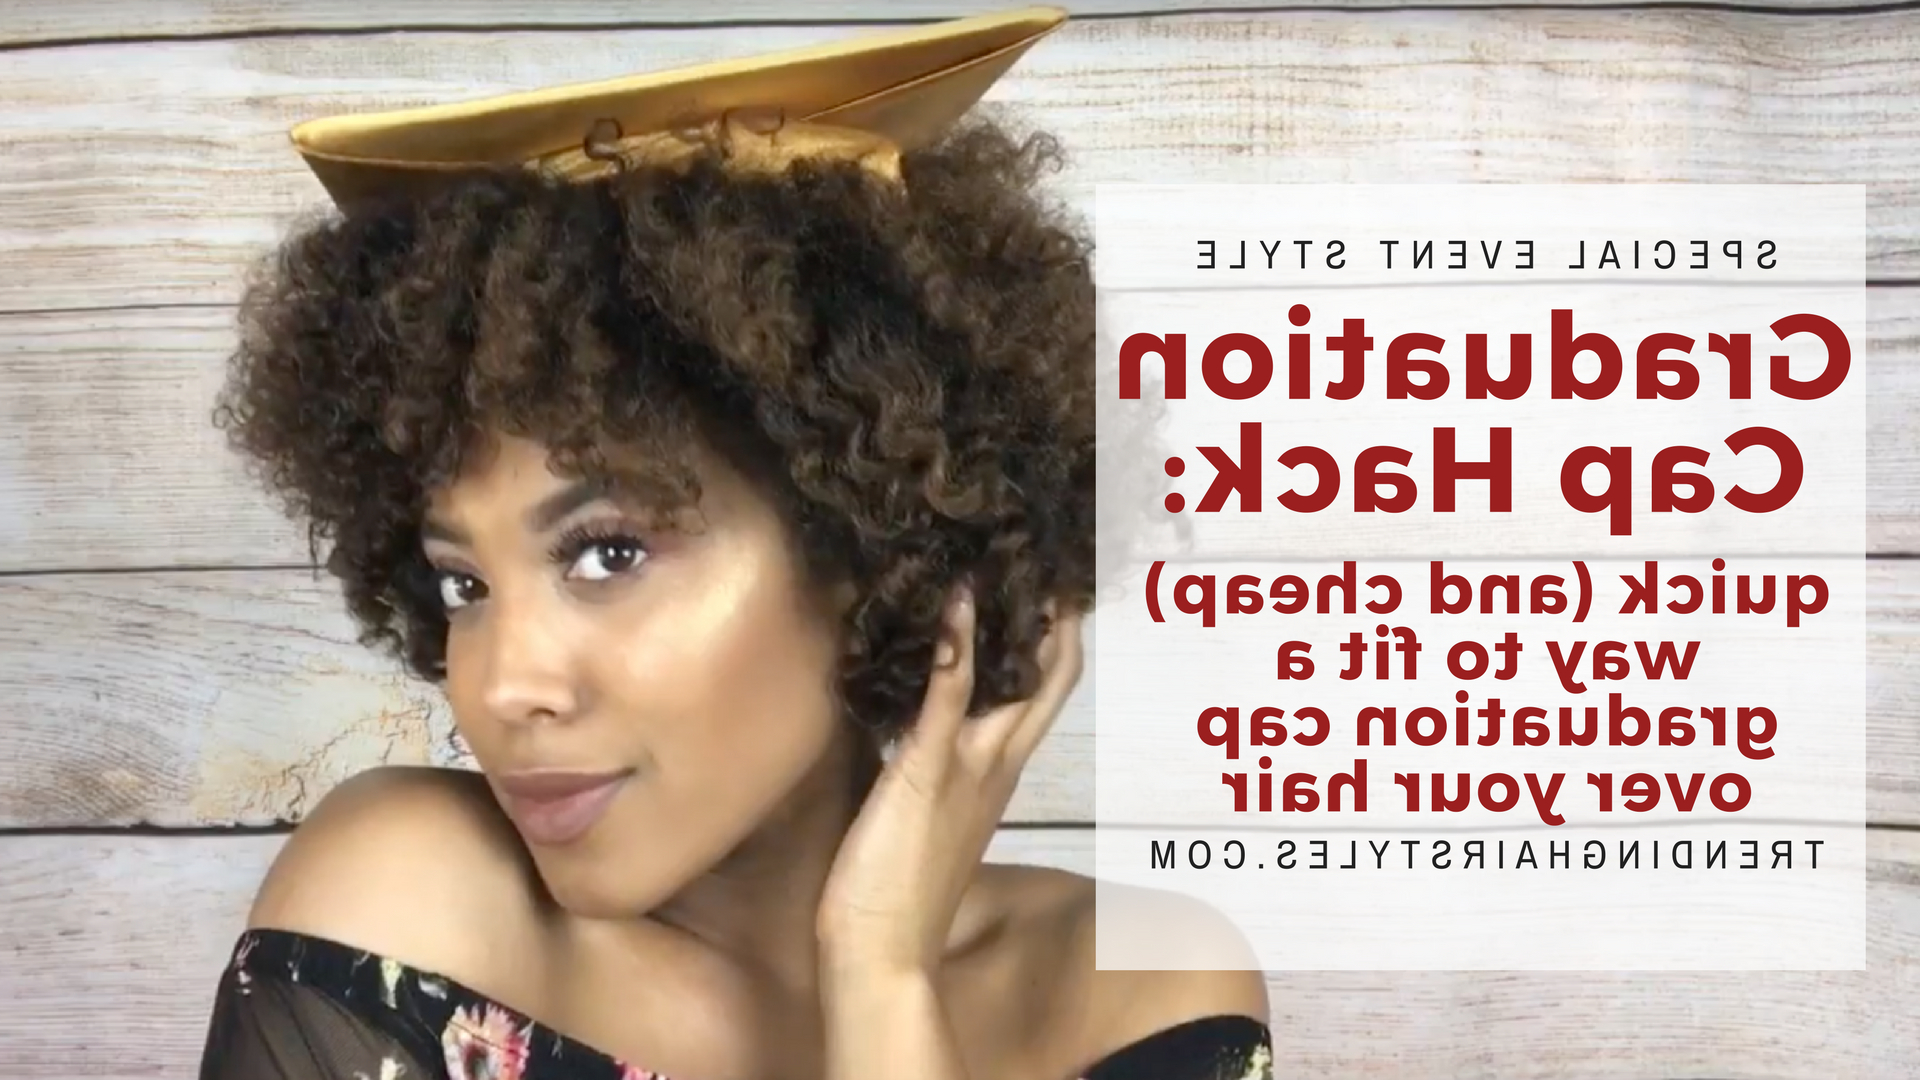 Graduation Cap Hack: How To Fit A Graduation Cap Over Your Hair Intended For Graduation Cap Hairstyles For Short Hair (View 19 of 25)